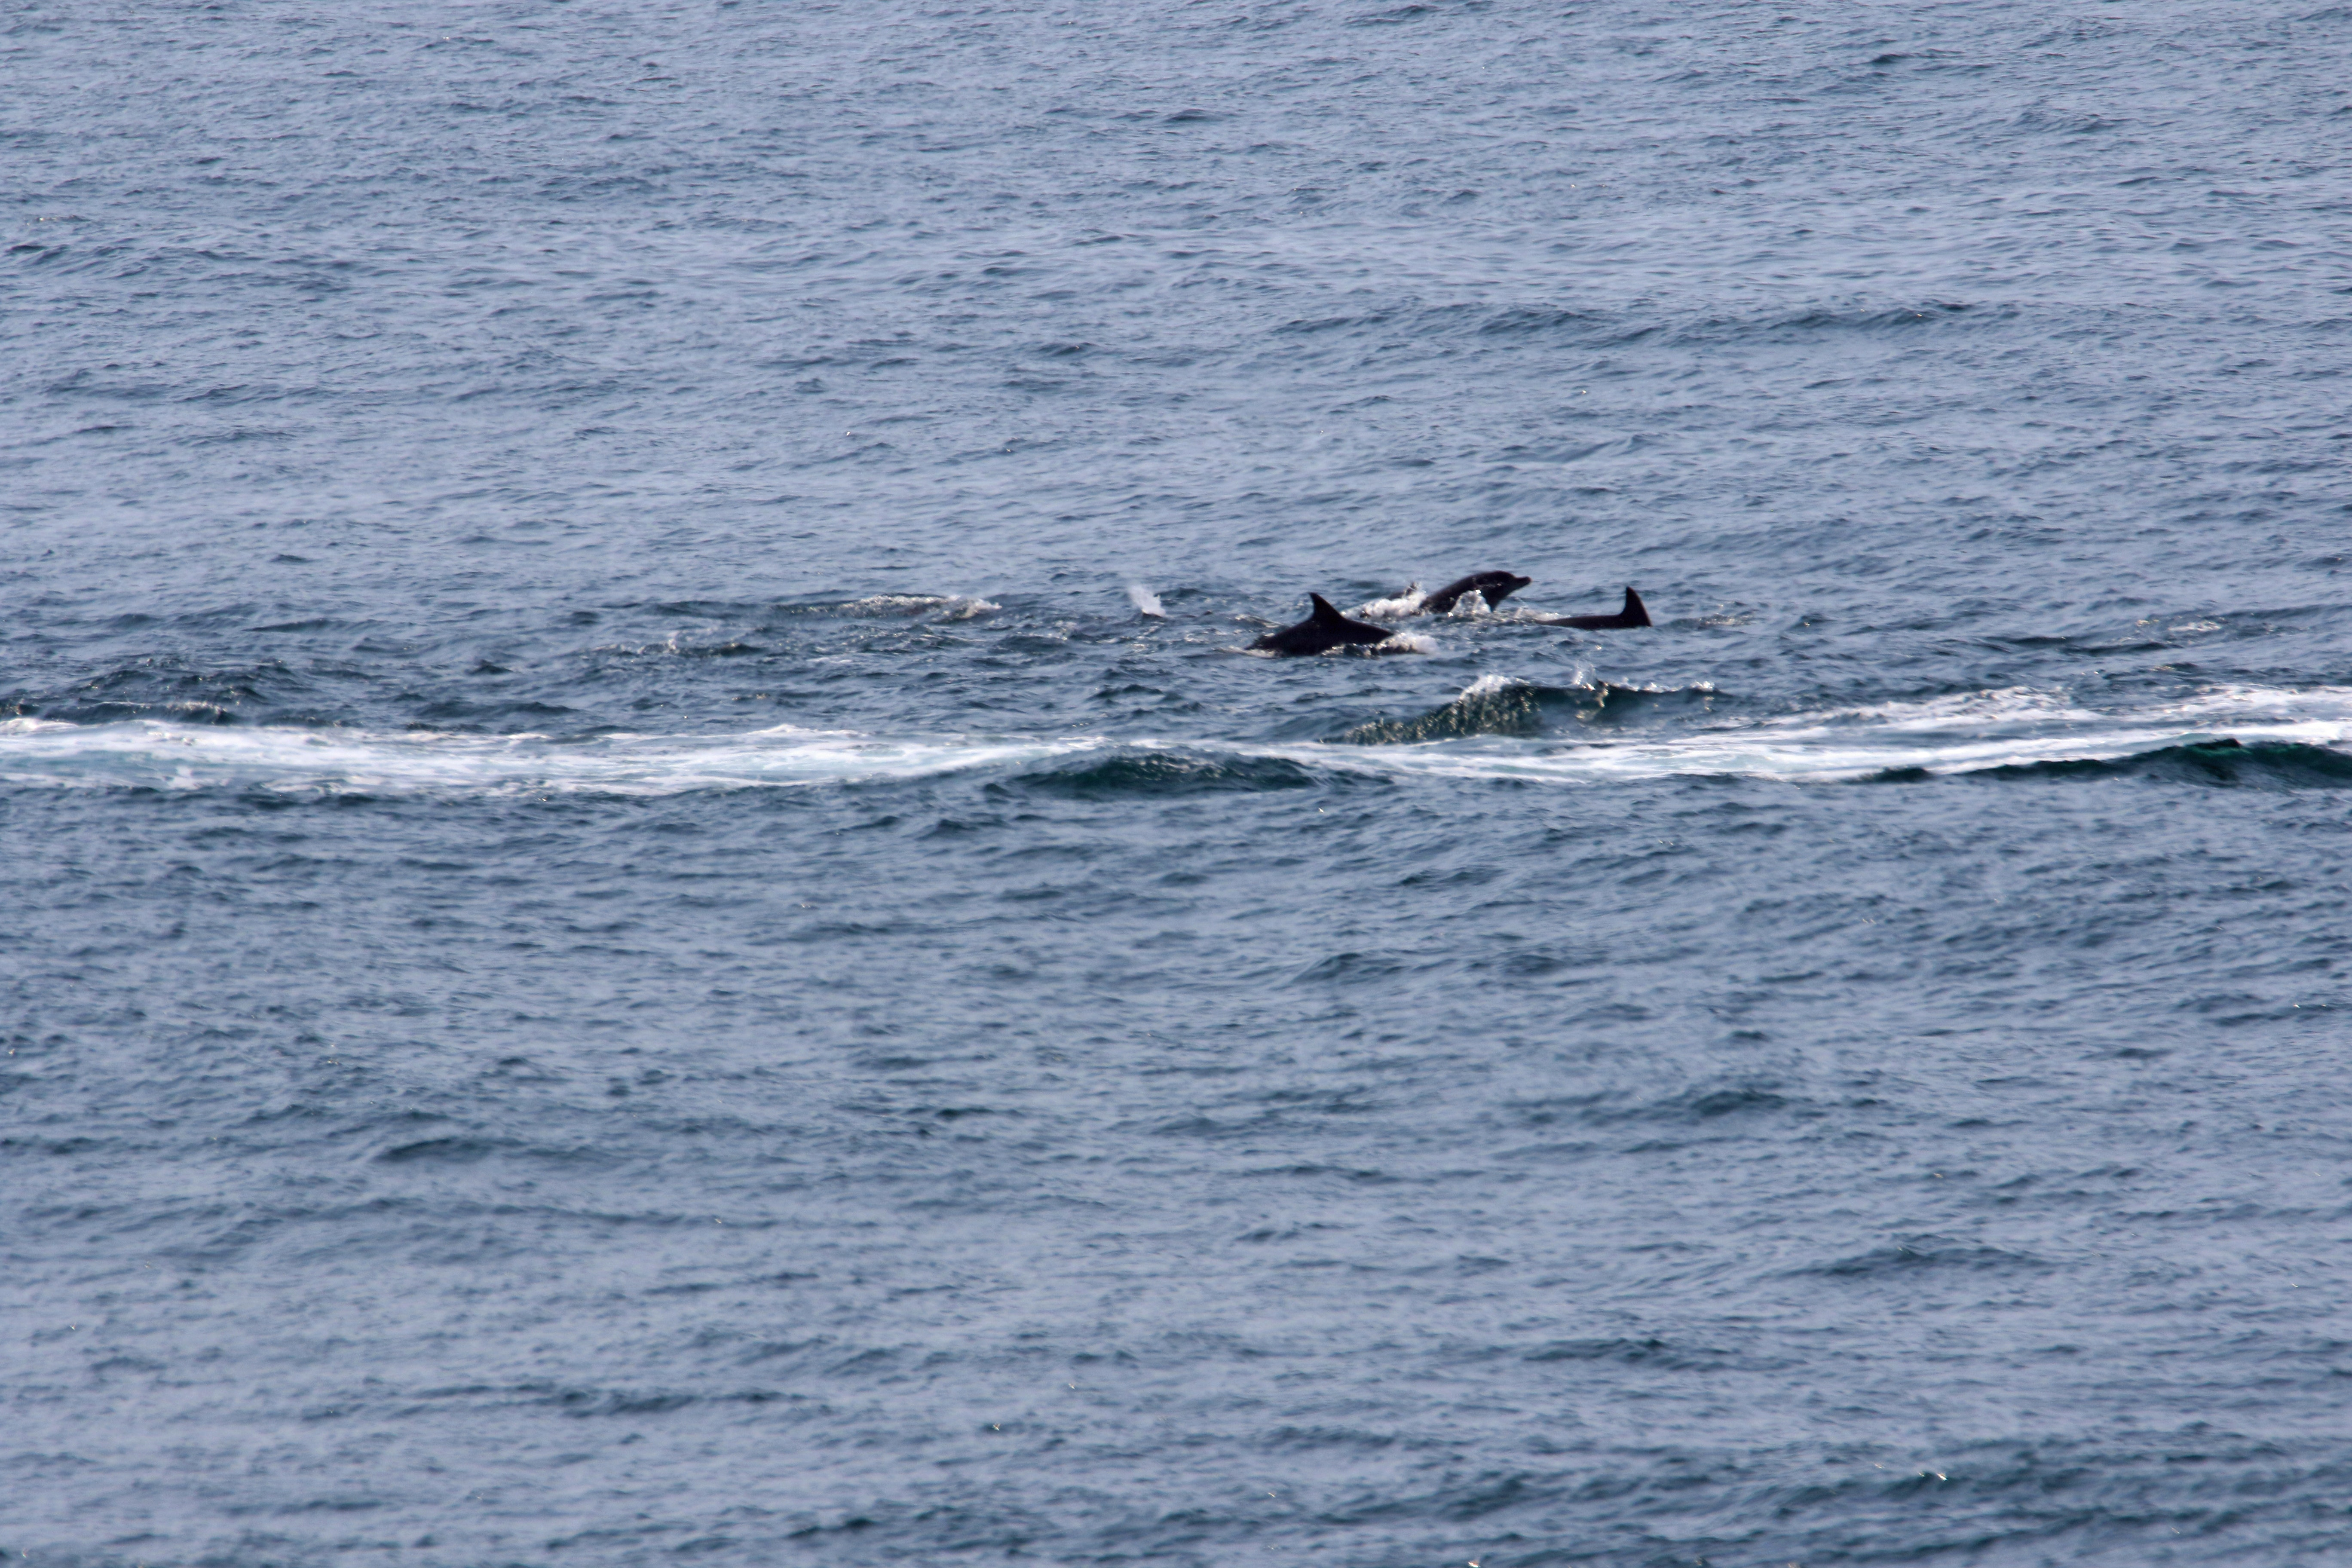 Wild dolphins swimming in the ocean photo